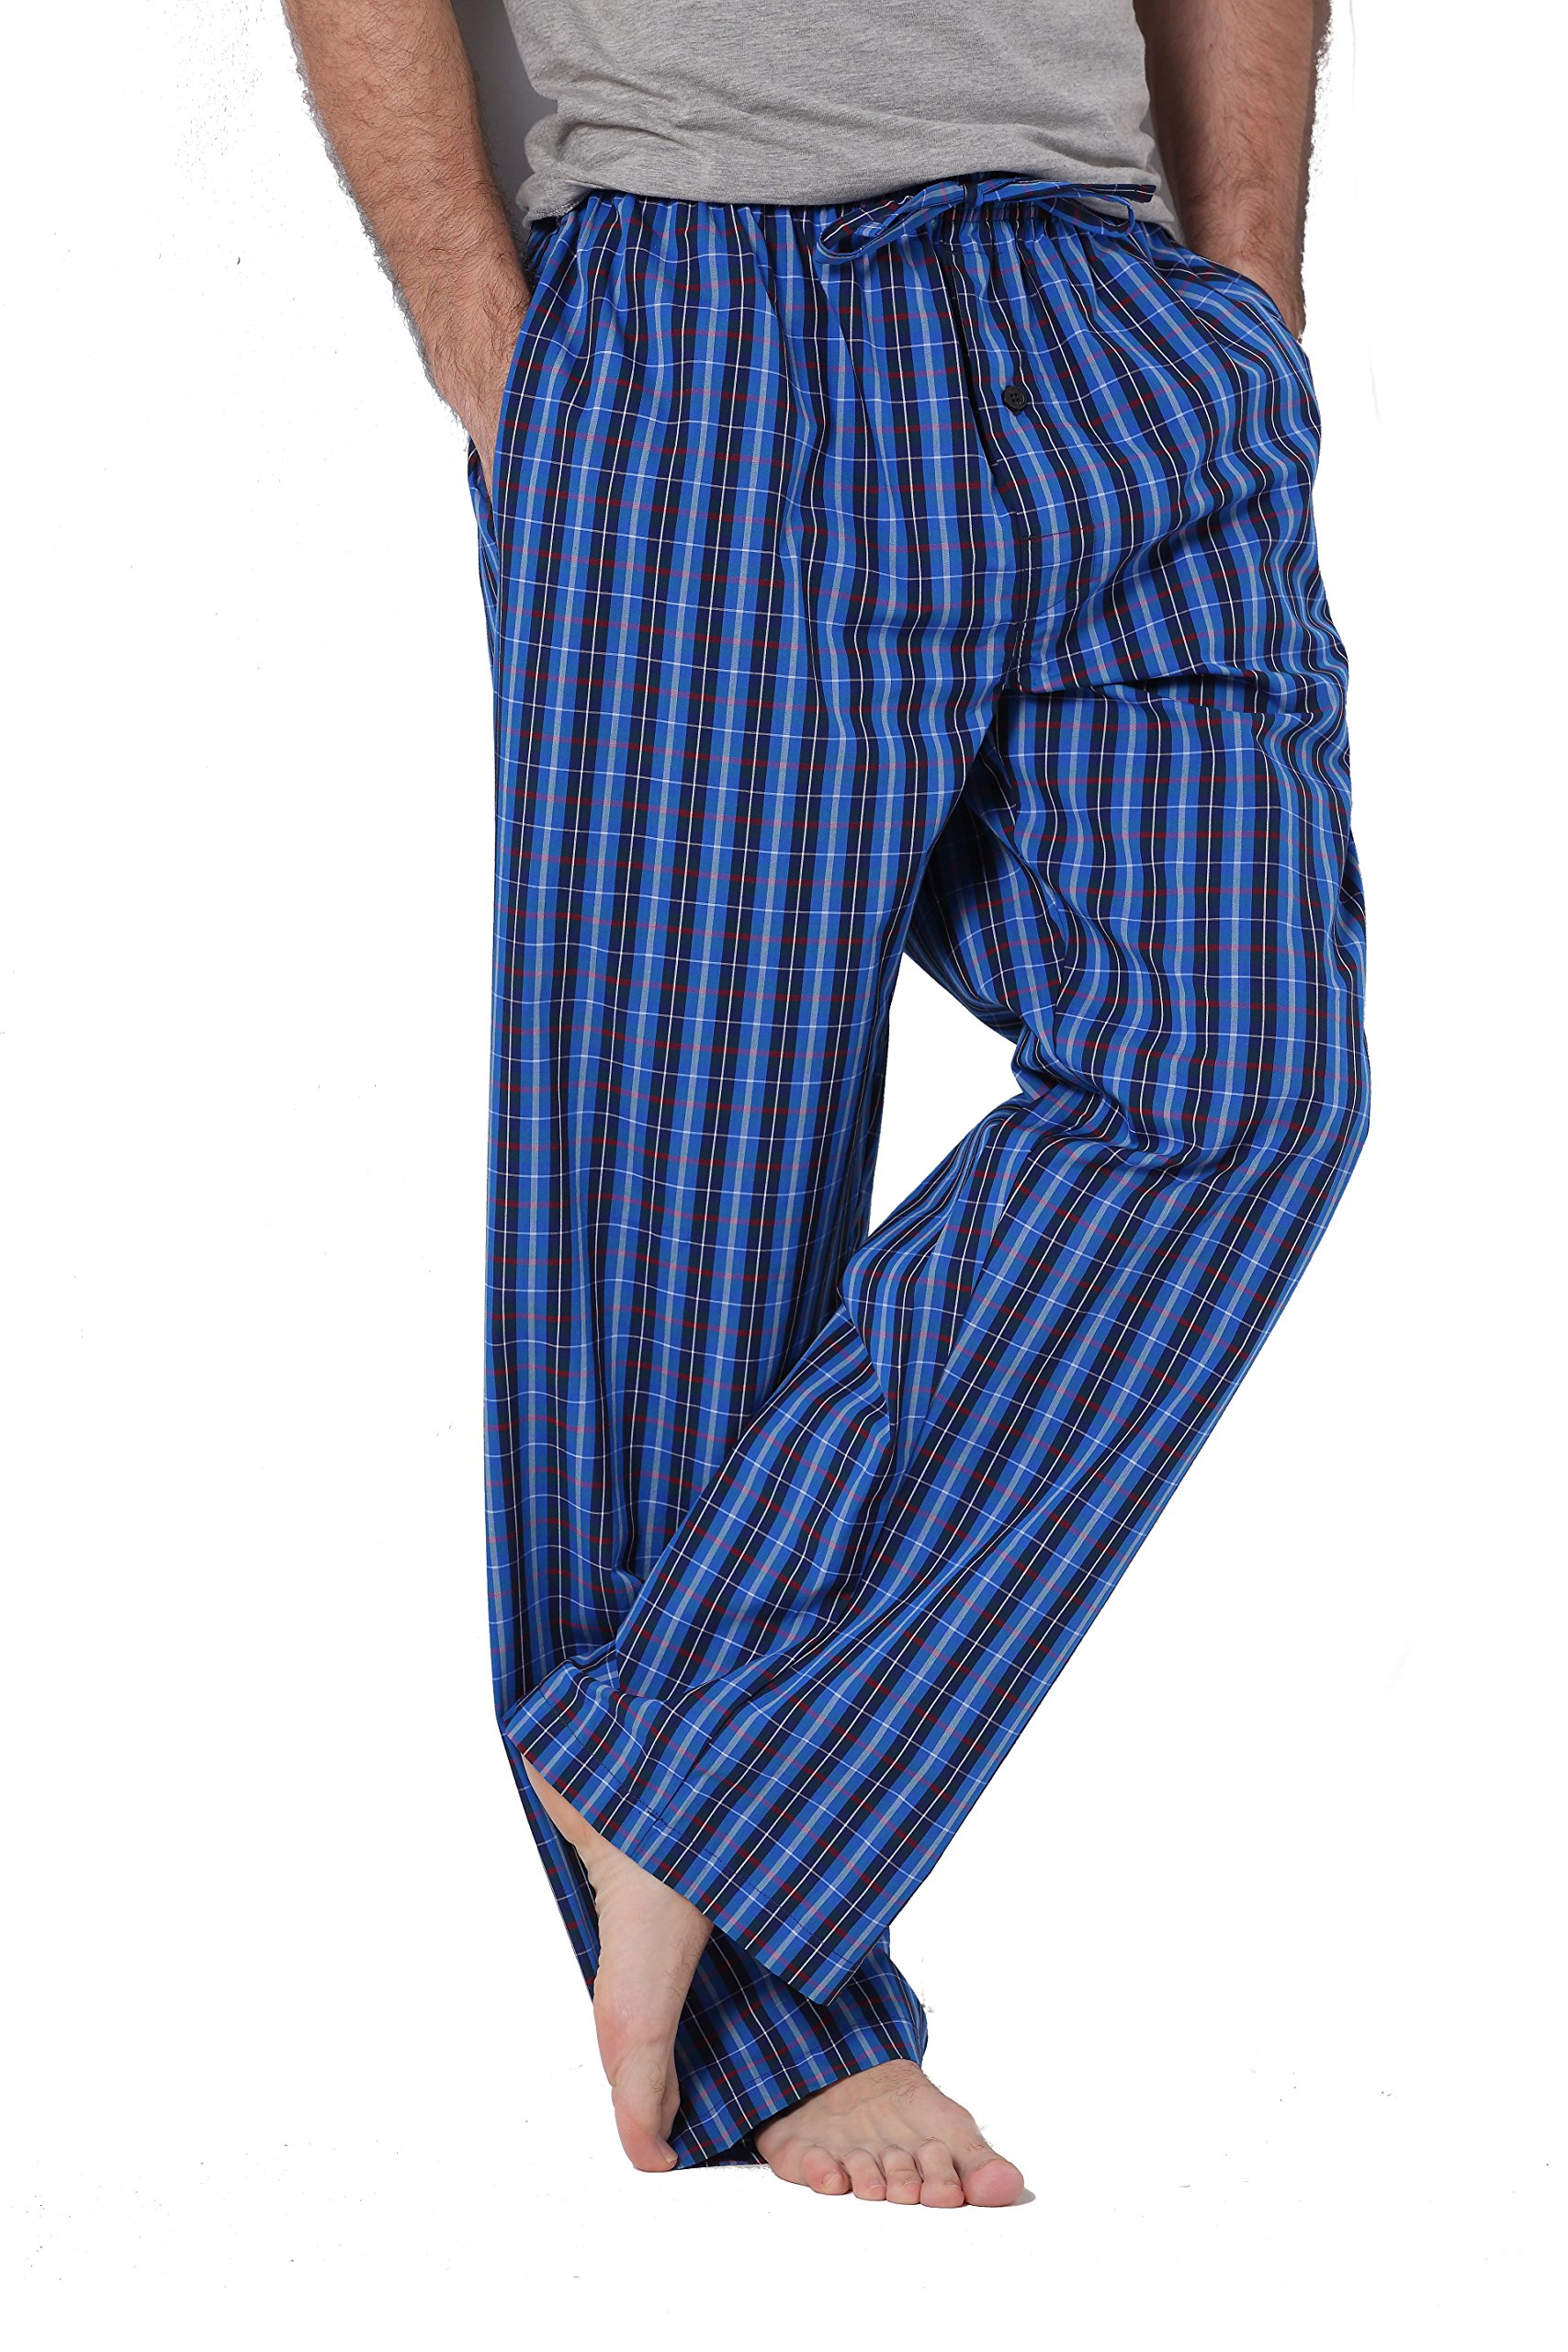 CYZ Men's 100% Cotton Poplin Pajama Lounge Sleep Pant-P17004-L by CYZ Collection